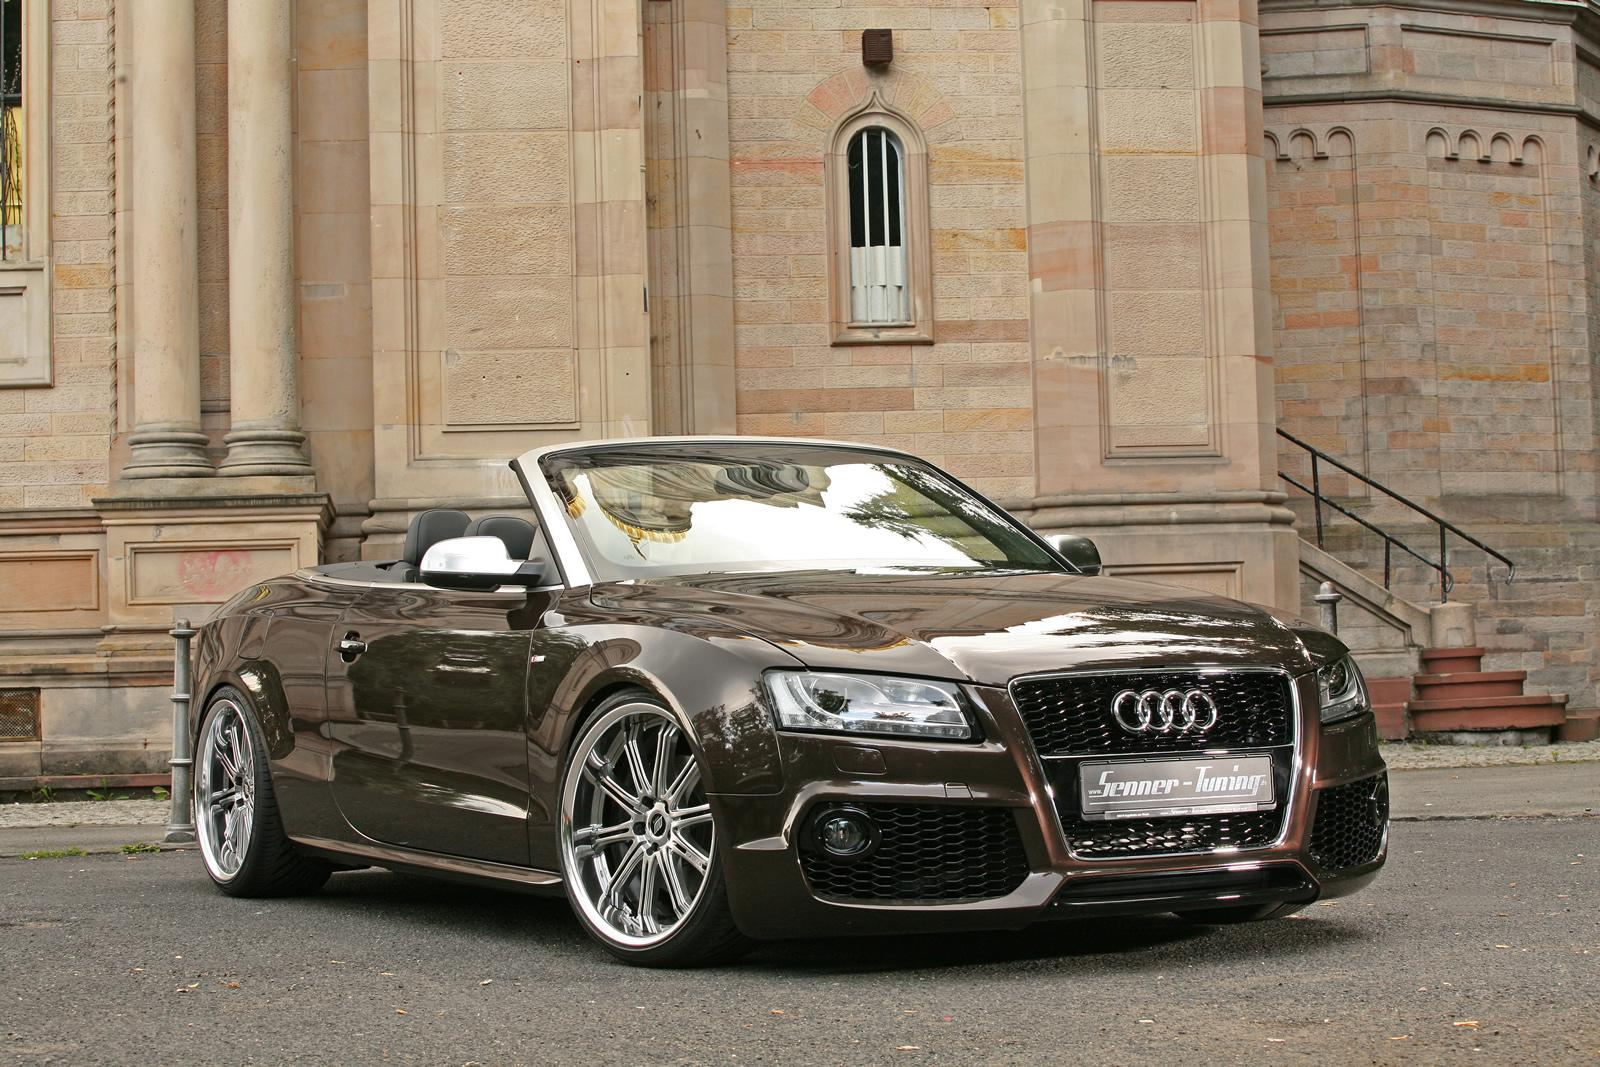 cars gto 2010 audi a5 cabrio senner tuning. Black Bedroom Furniture Sets. Home Design Ideas